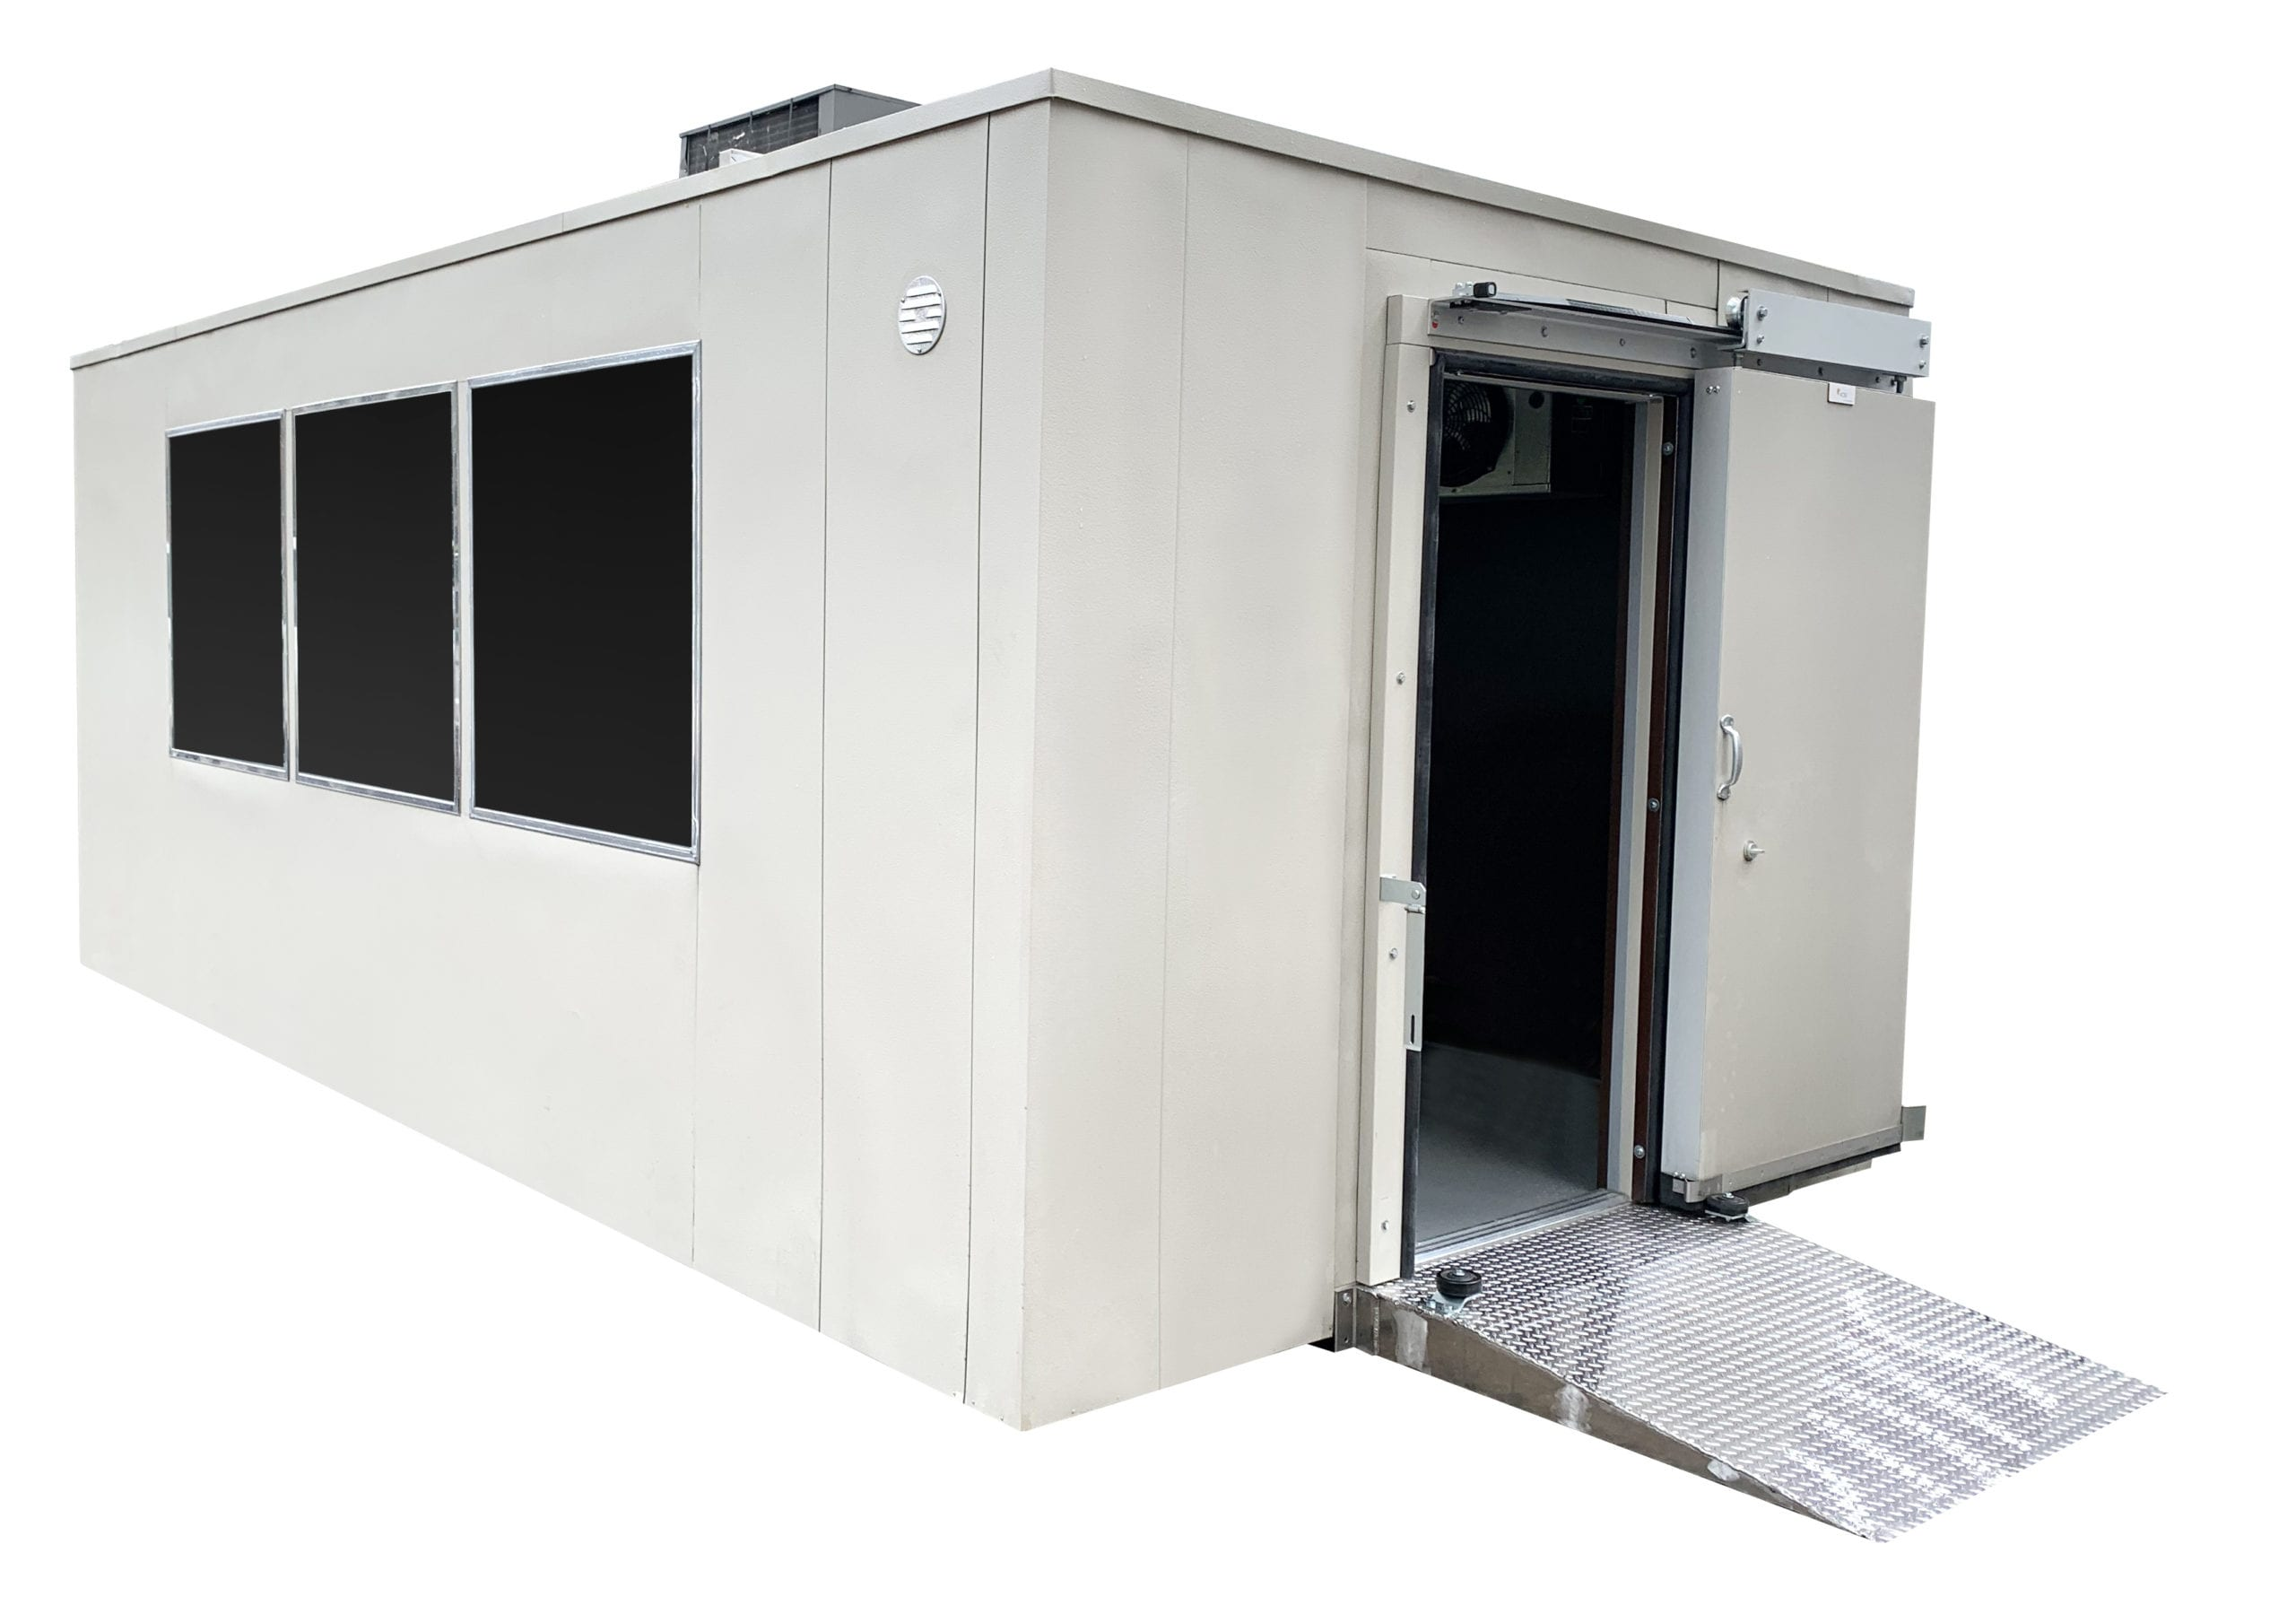 Everidge HVAC-controlled ambient environment walk-in units and refrigerated walk-in coolers and freezers are available for outdoor or indoor applications